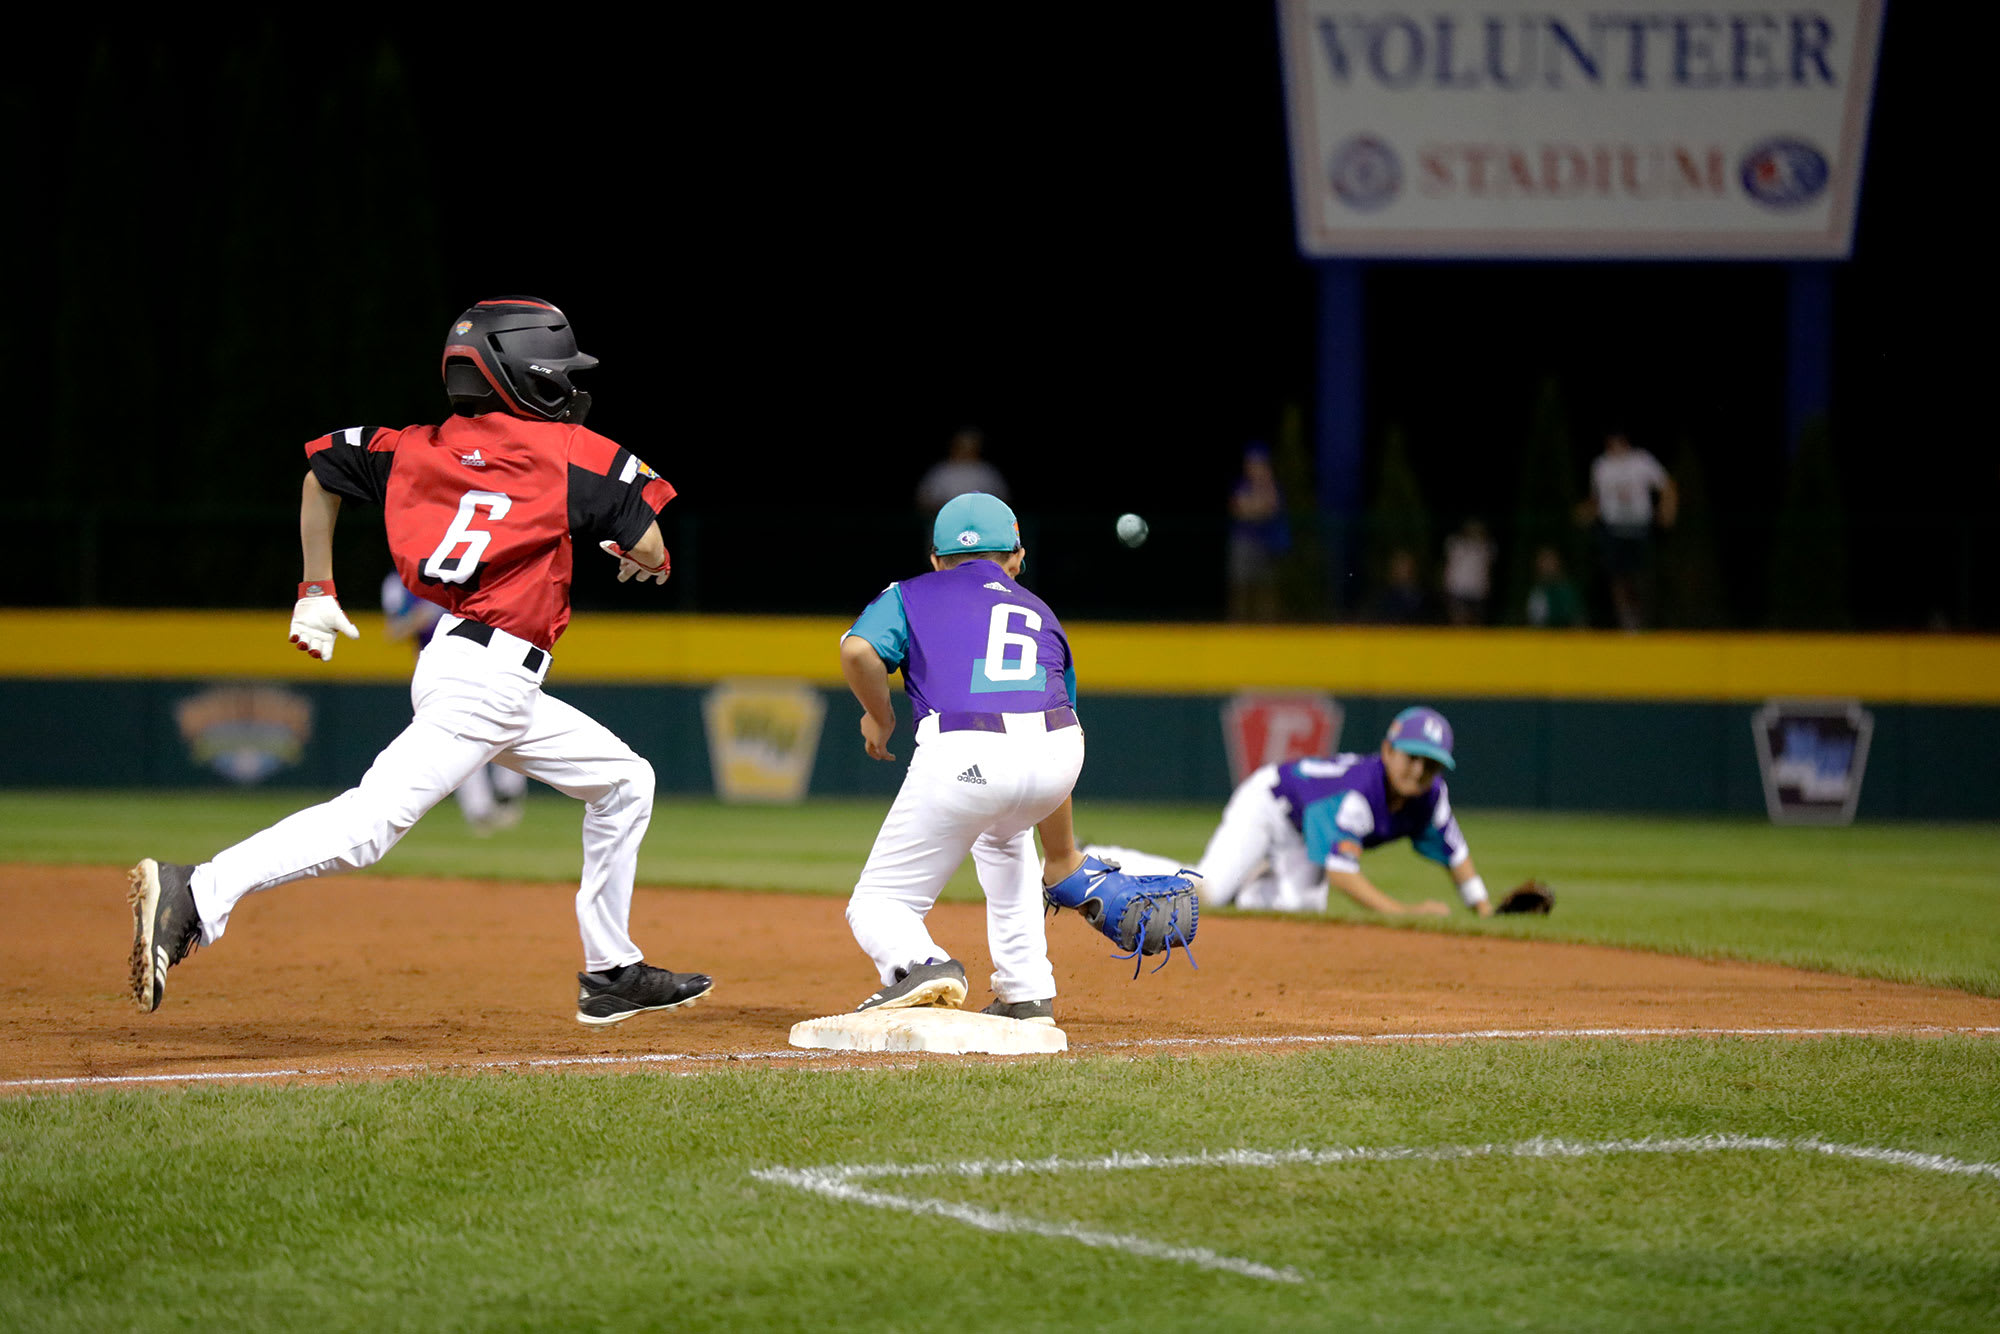 Canada player running towards base